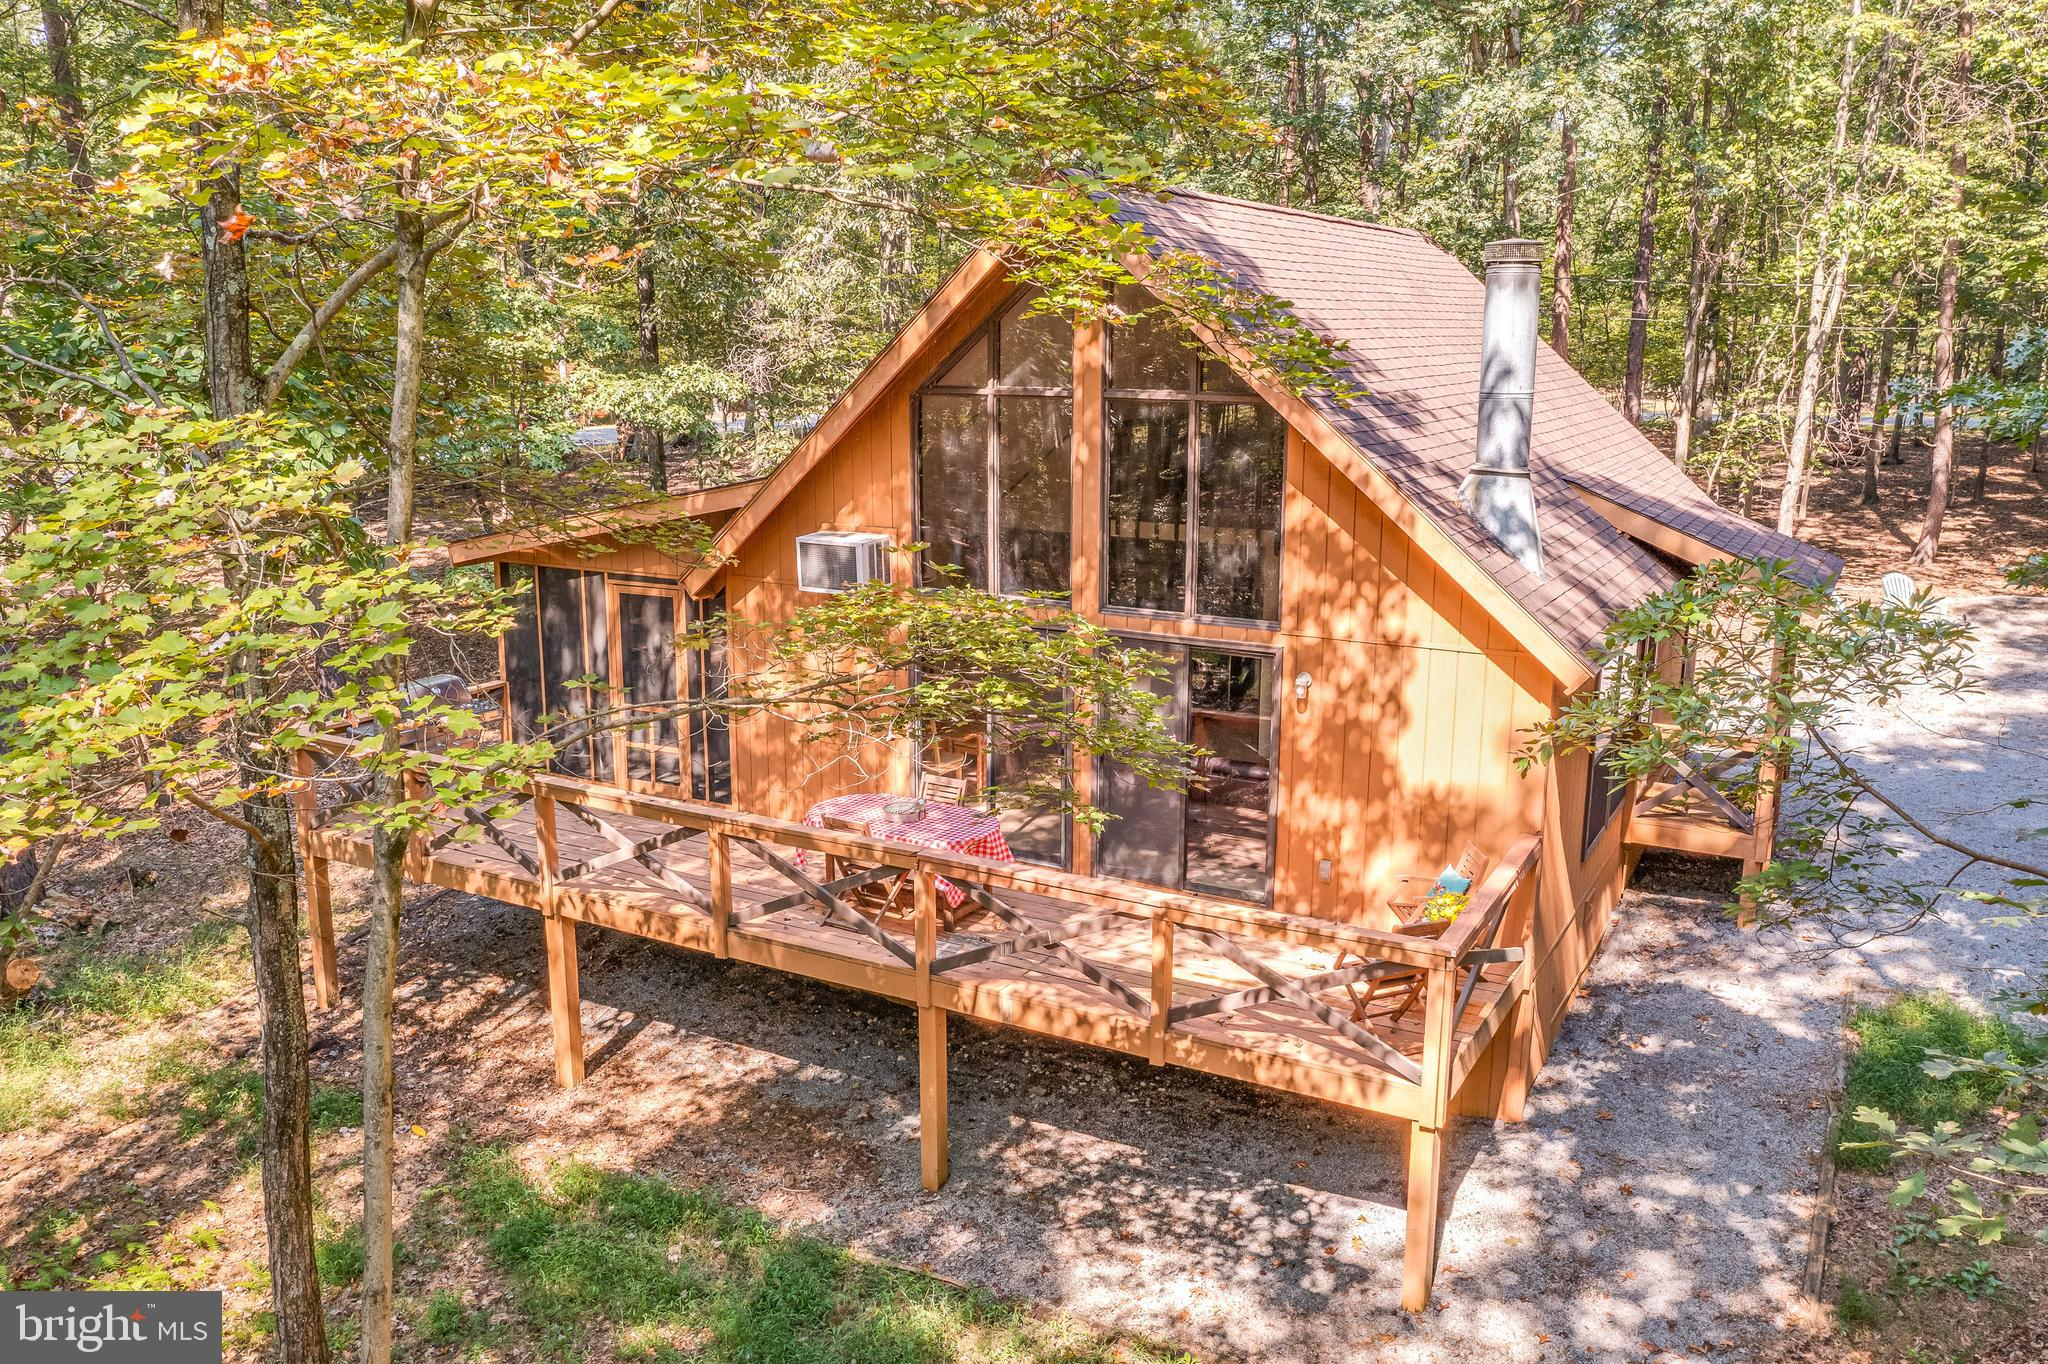 This Charming 2 Bedrooms, 1 Luxury Bath, Cabin On Private 1.05 Acre Wooded Lot In Walden Woods At Th